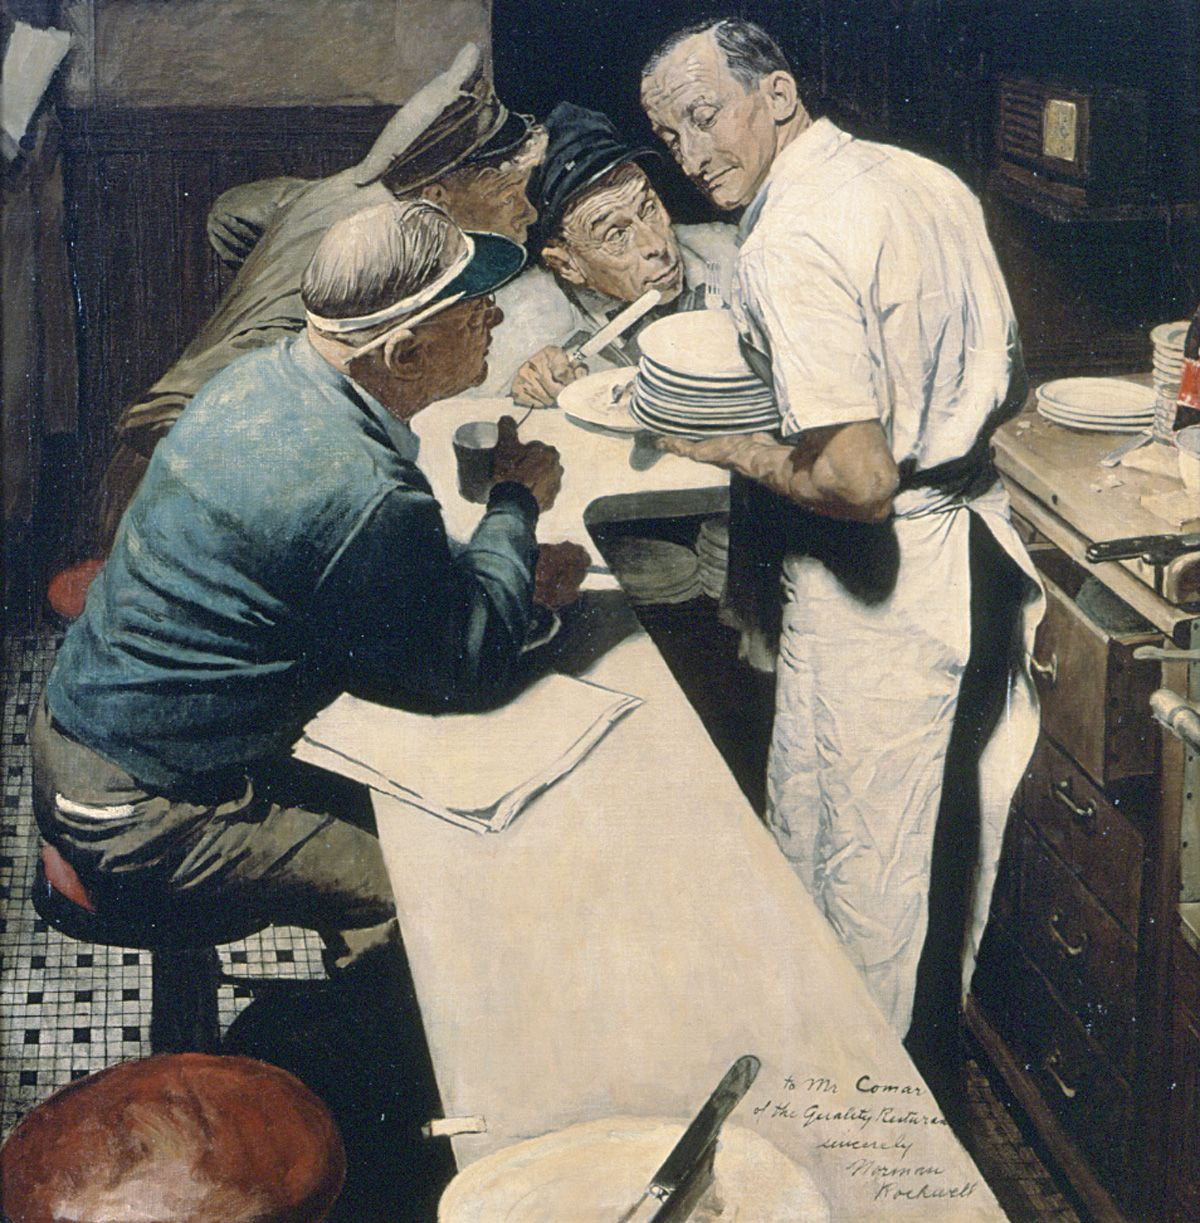 Google Show Me Beautiful Bathrooms: Norman Rockwell Obras De Arte - Buscar Con Google